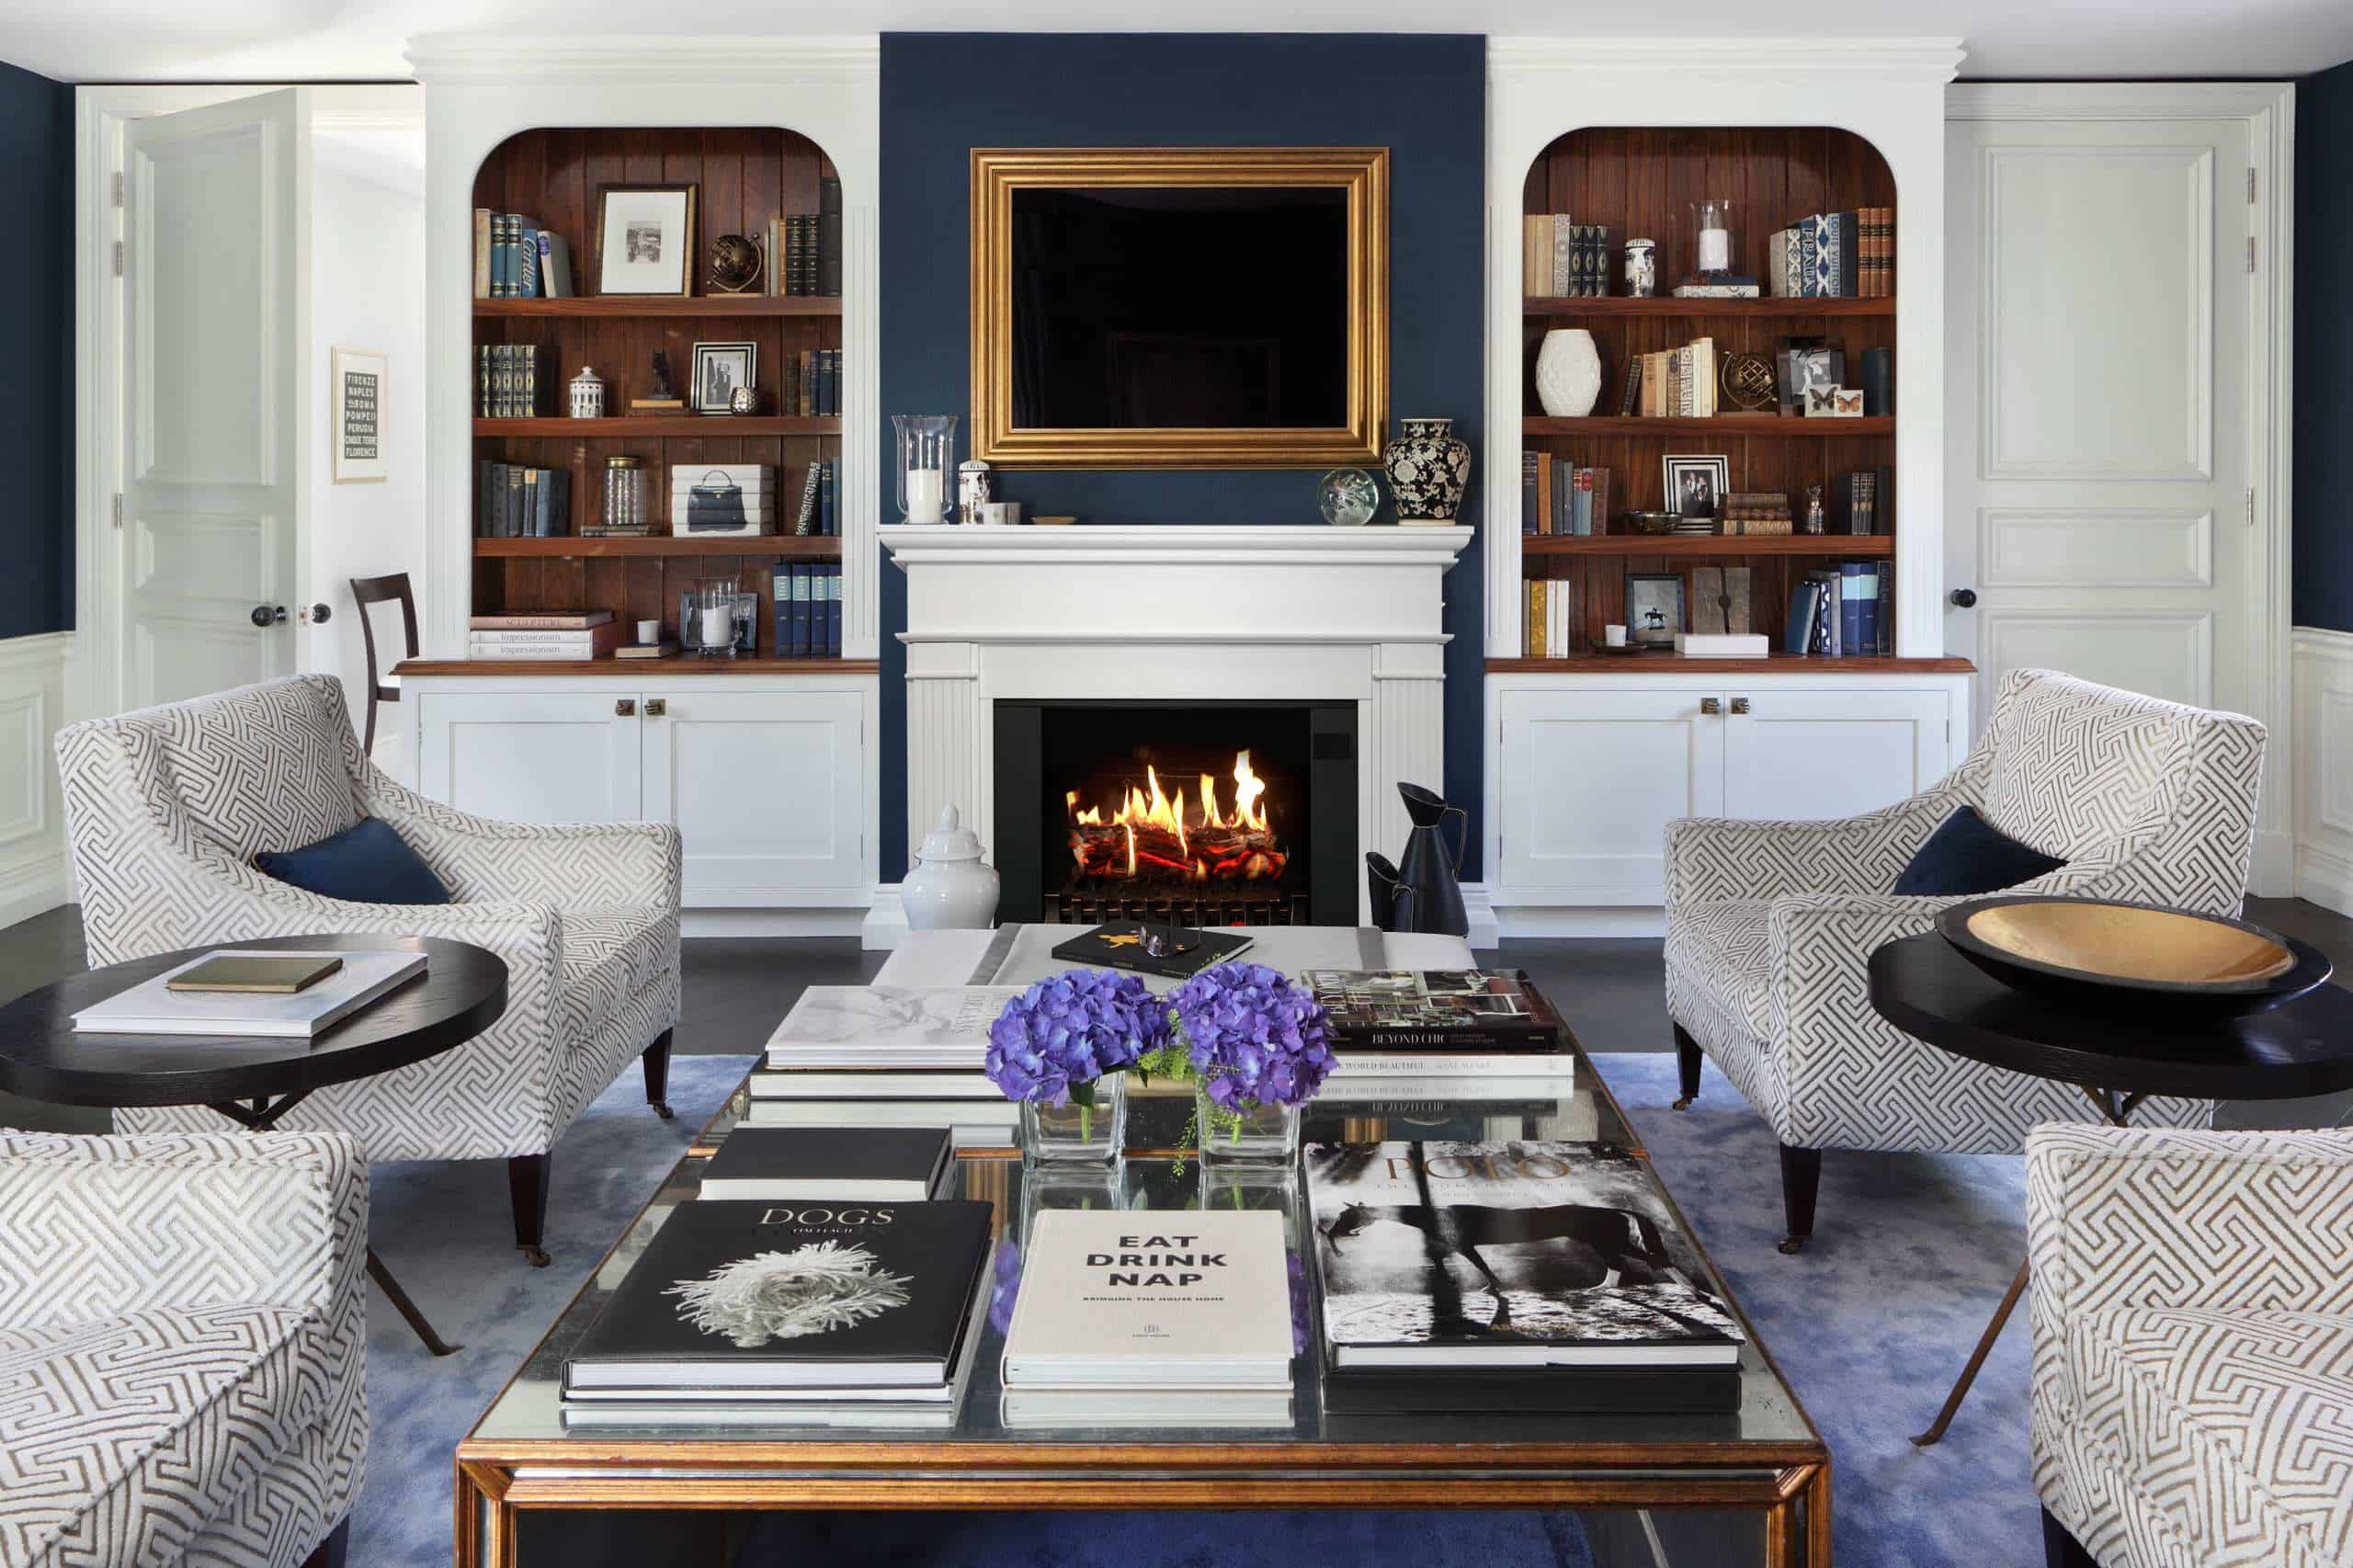 Electric Fireplace 2021 With Mantel